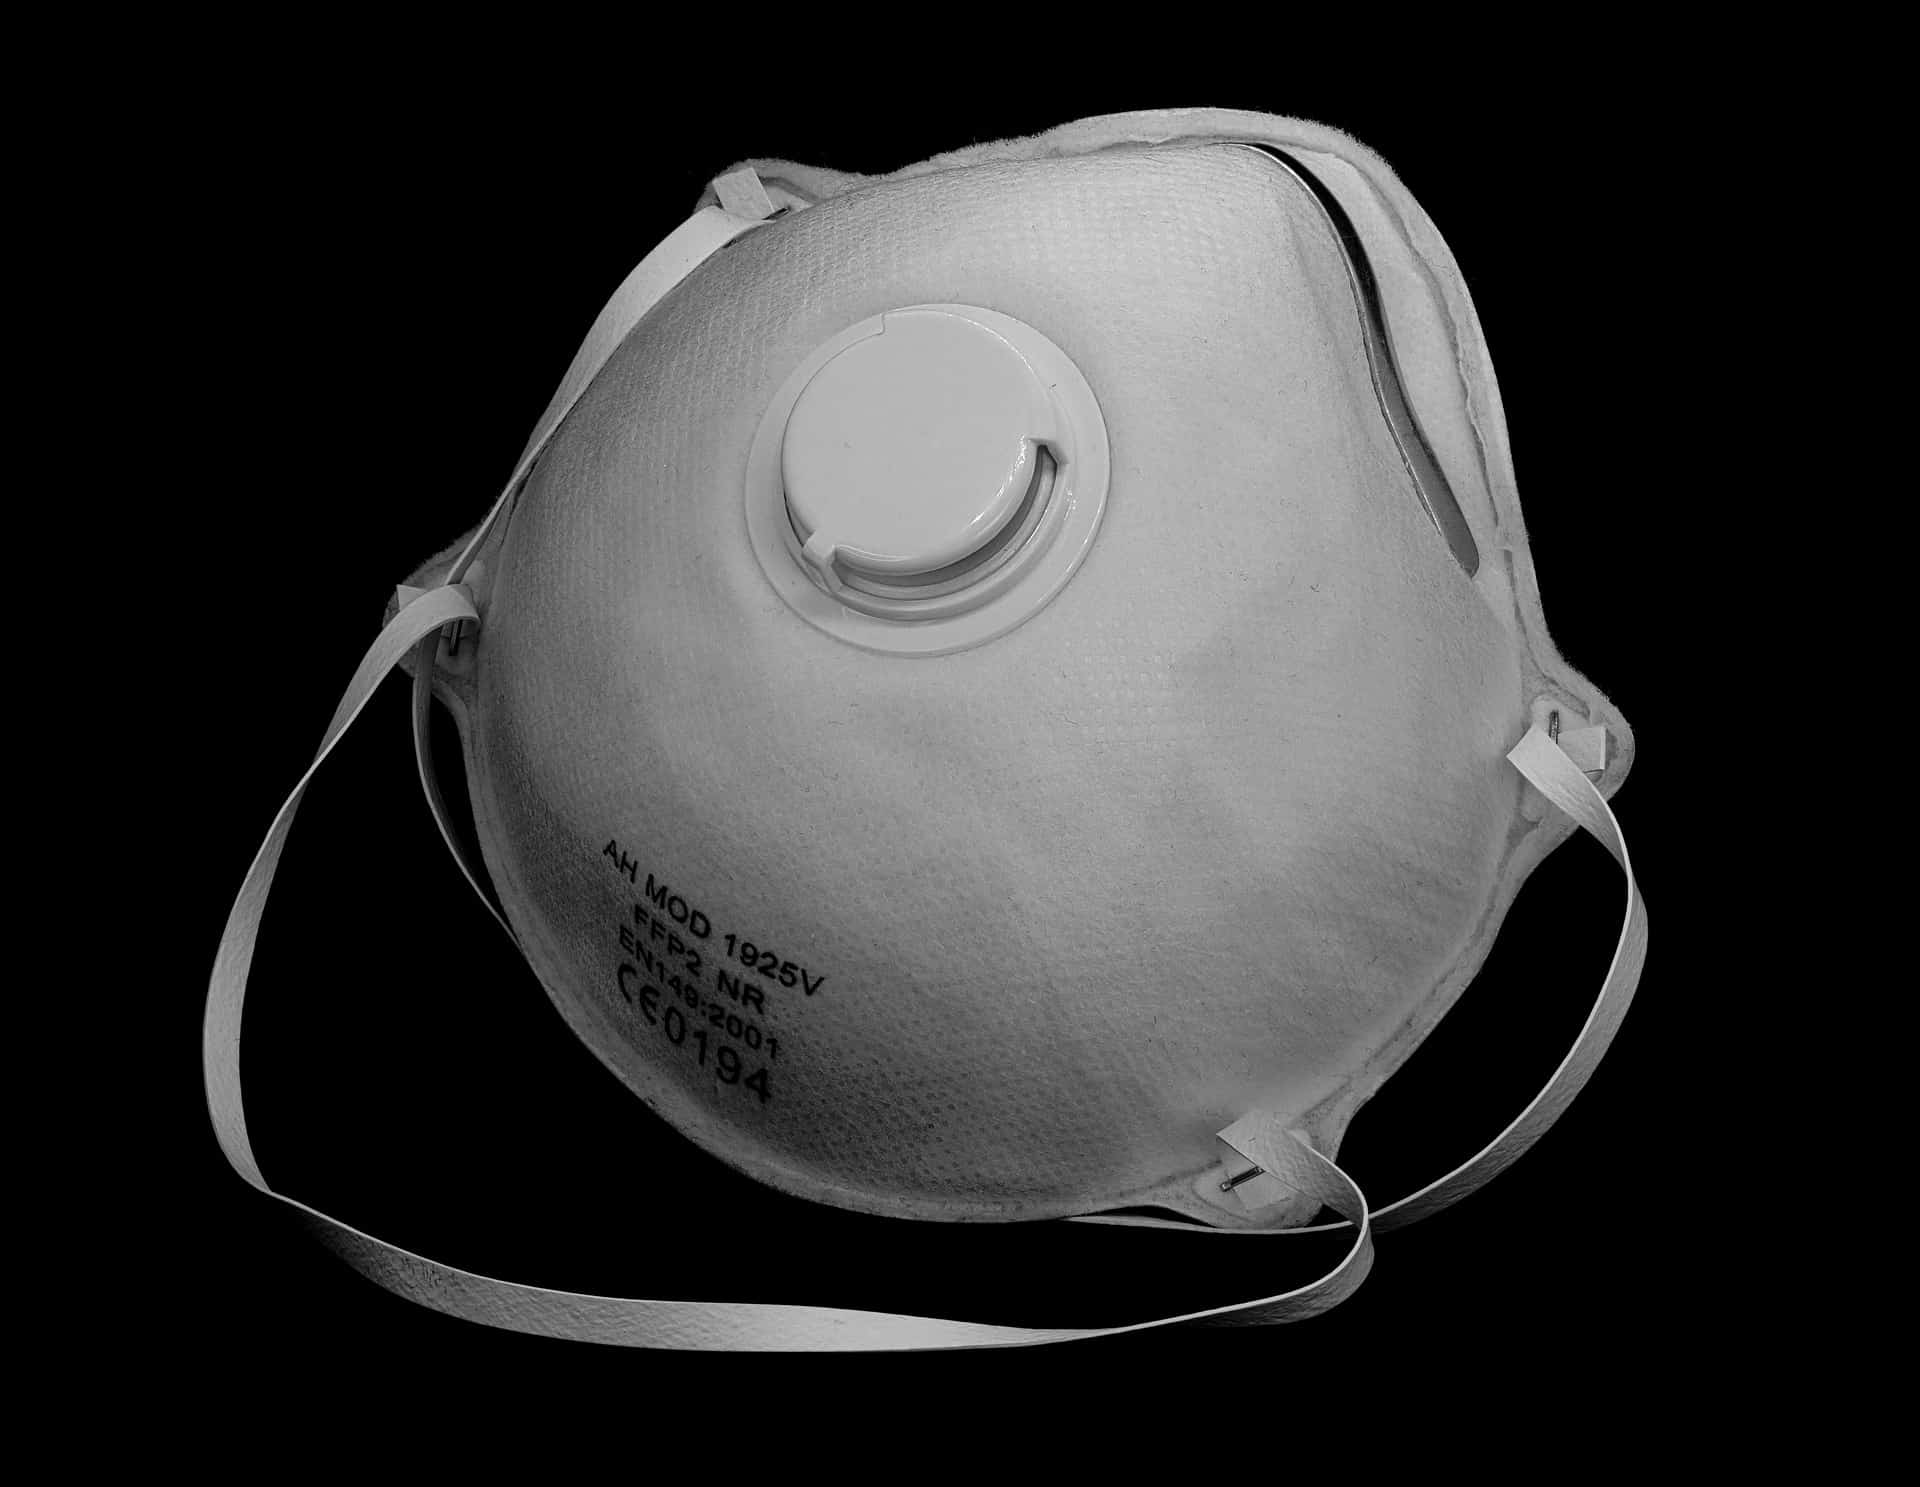 Personal Protective Equipment (PPE) Kit To Use For COVID-19